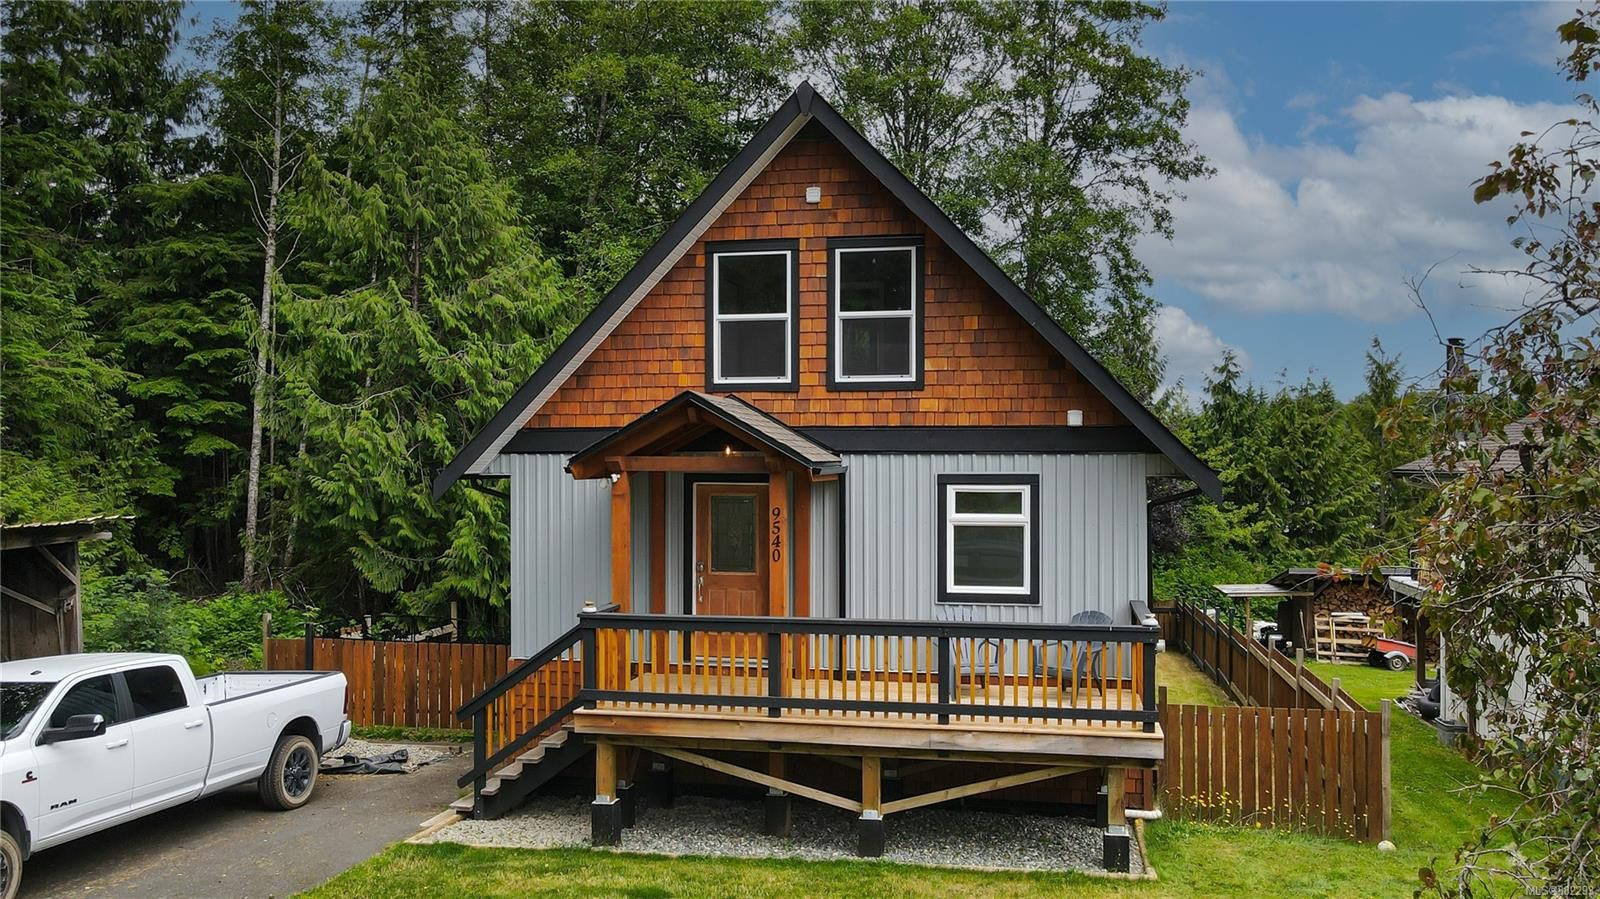 Main Photo: 9540 Carnarvon Rd in : NI Port Hardy House for sale (North Island)  : MLS®# 882293